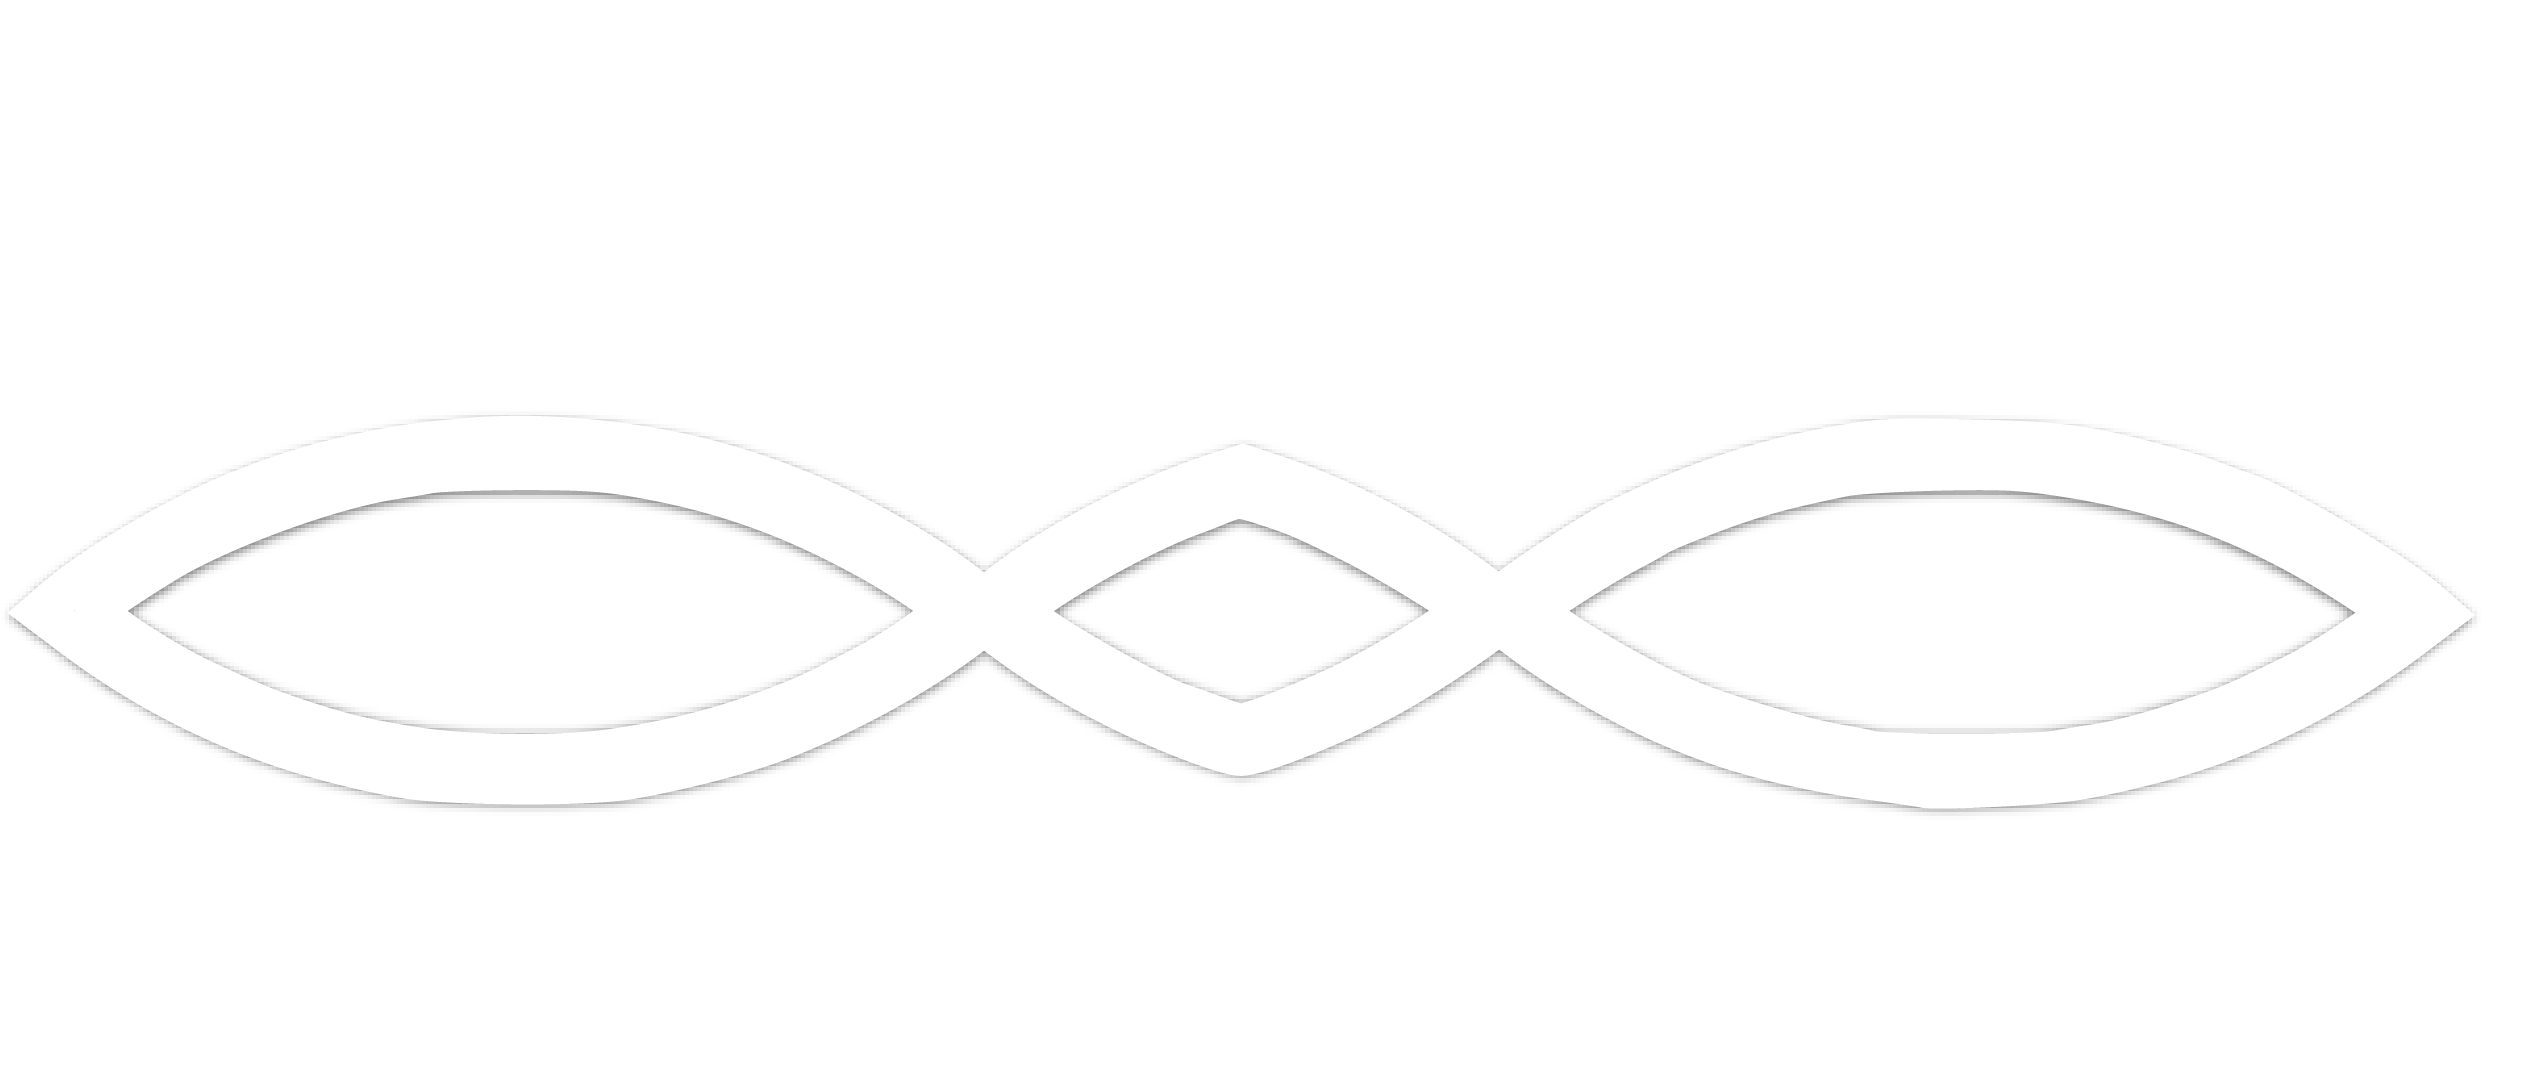 Grace And Peace Counseling